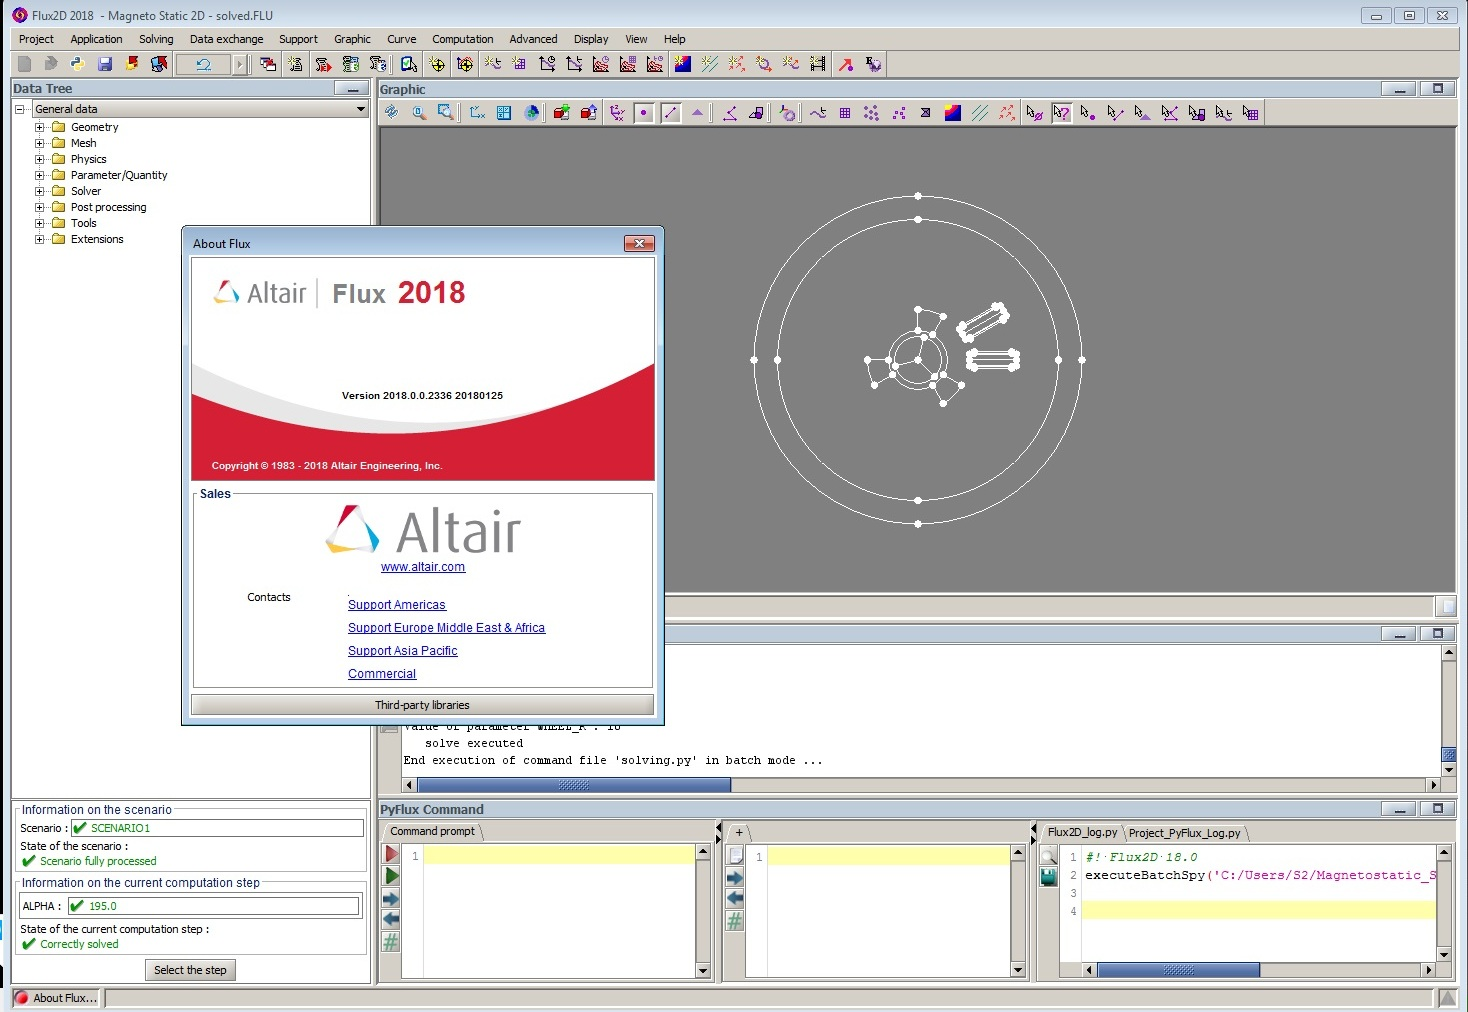 Working with Altair Flux 2018.0.0 build 2336 full